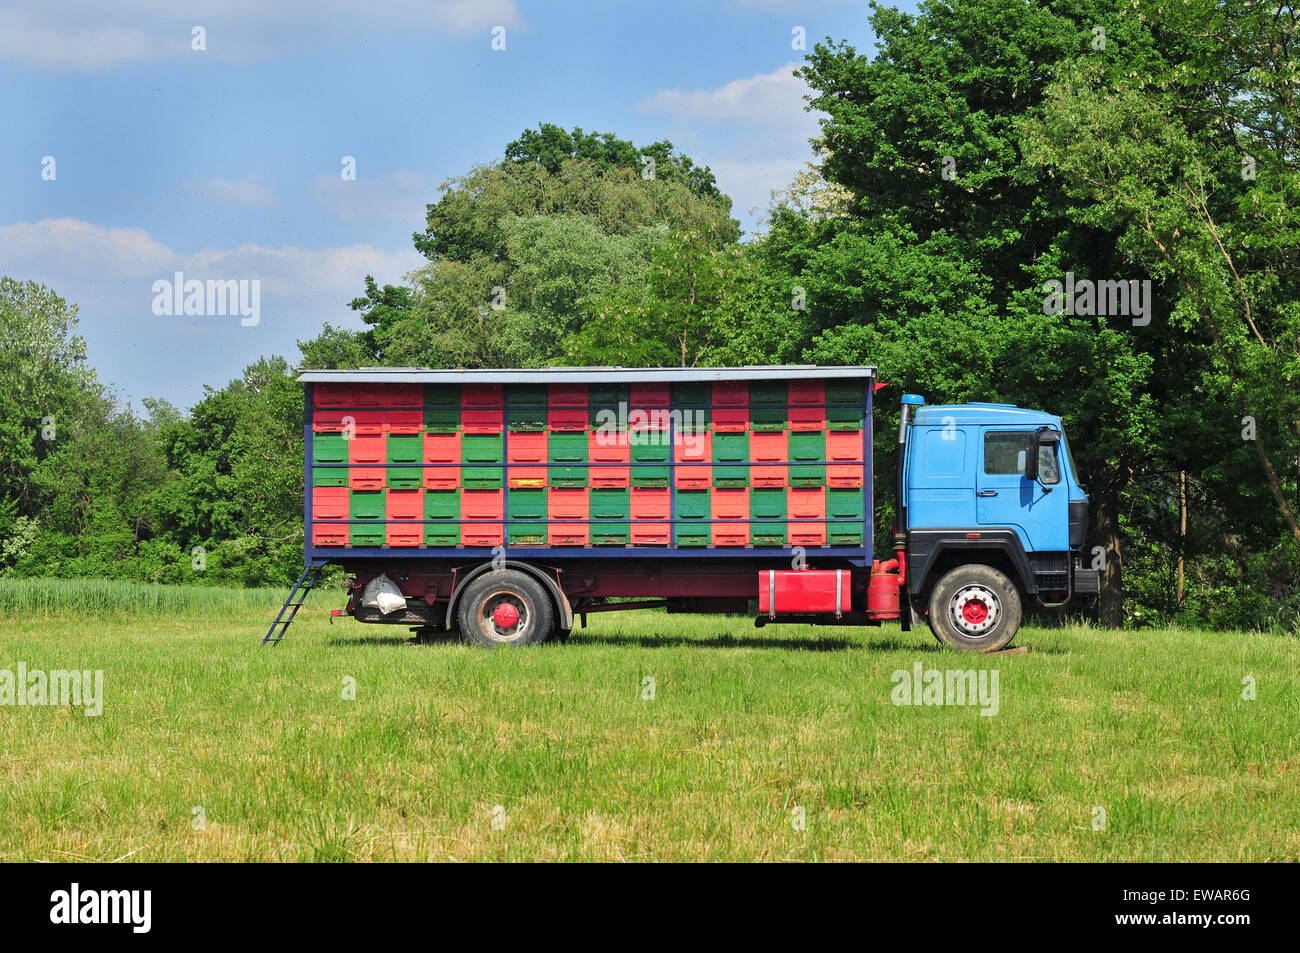 Mobile apiary parked in meadow - Stock Image